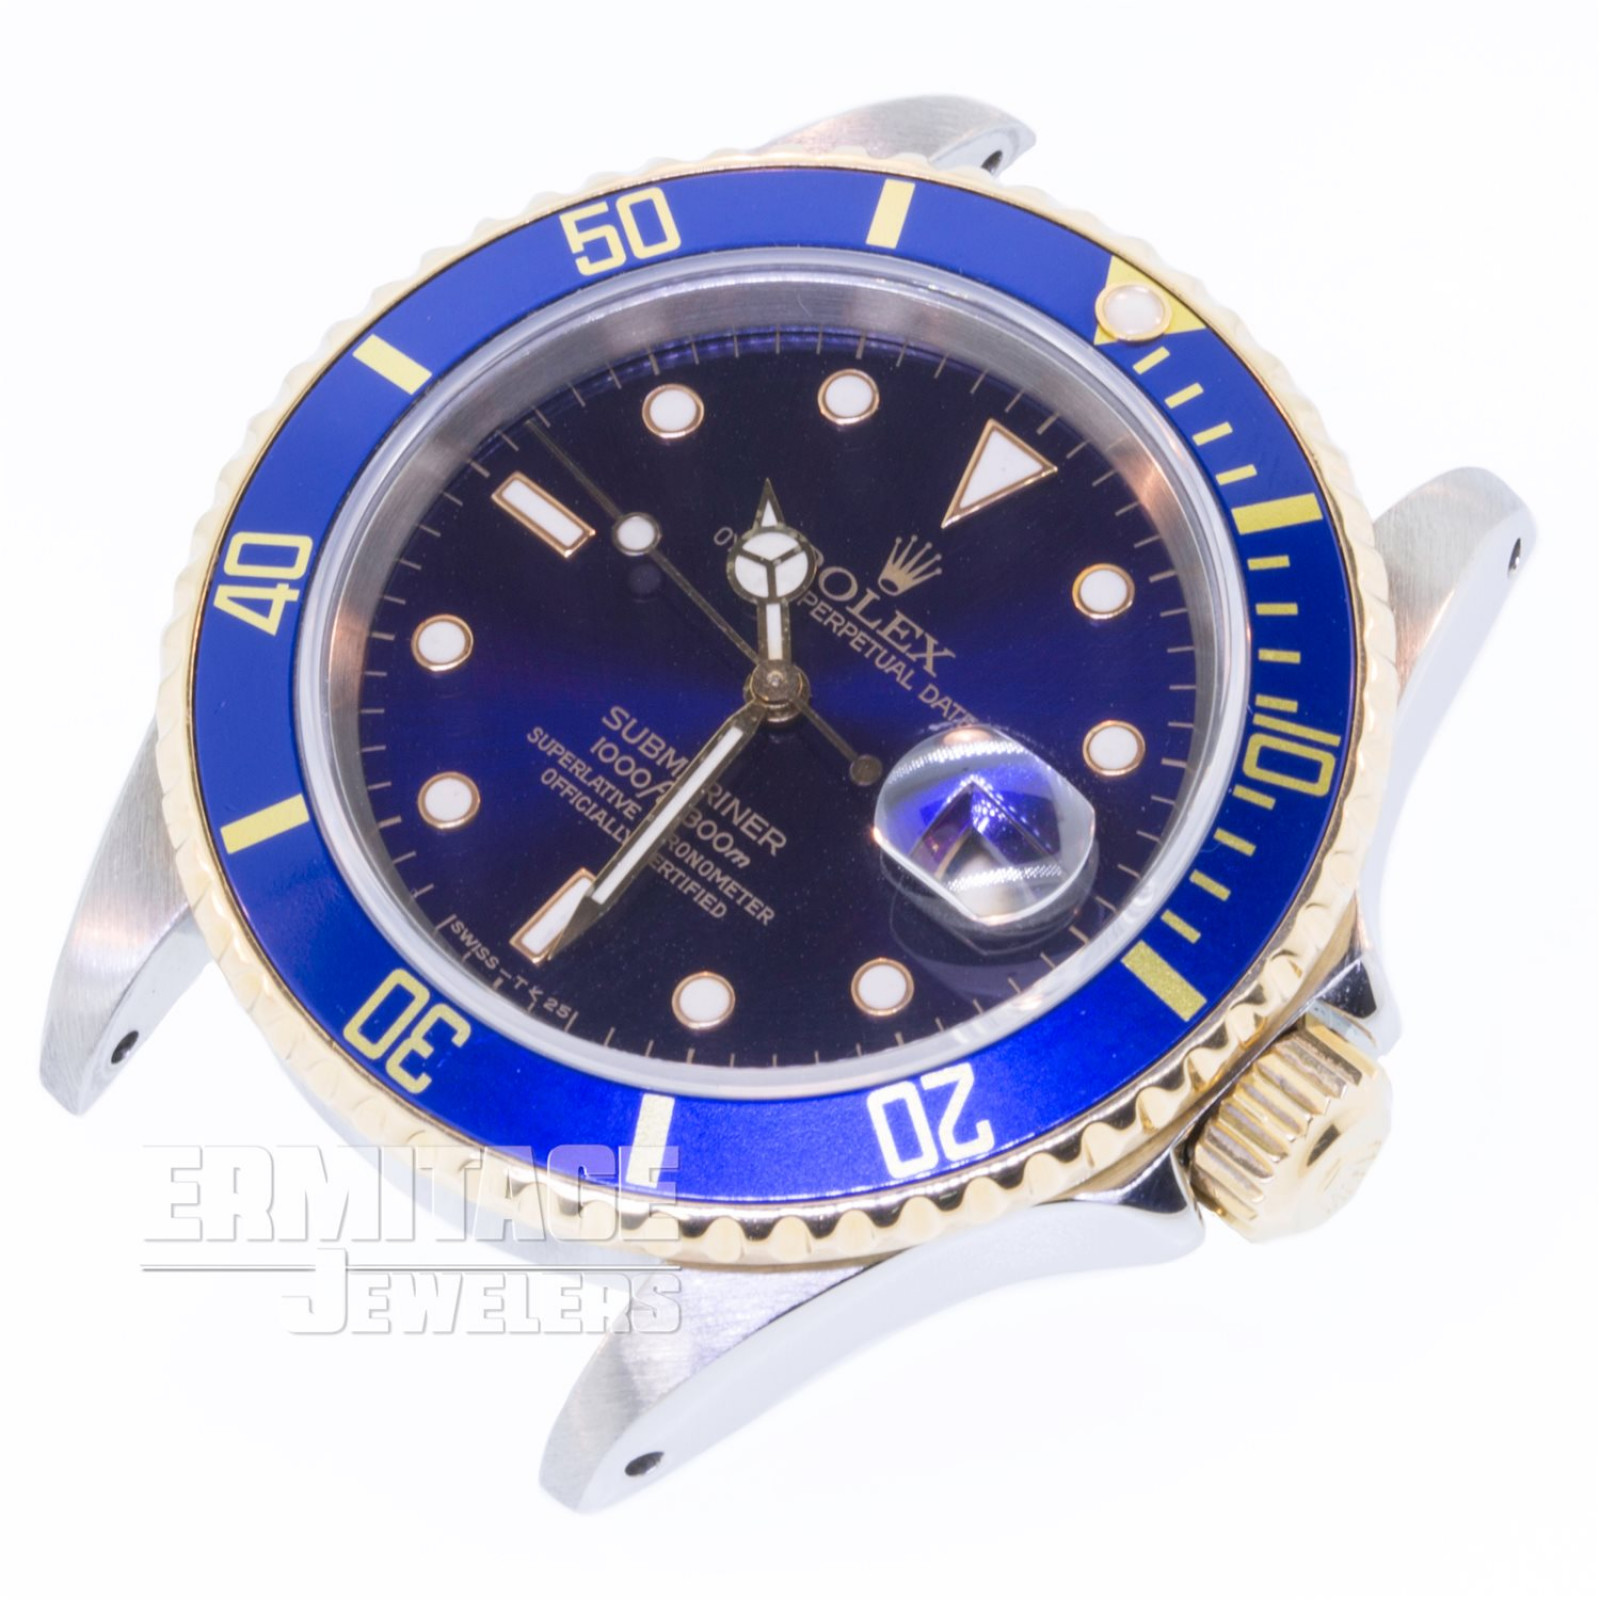 Rolex Submariner 16613 Oyster Gold & Steel 40 mm